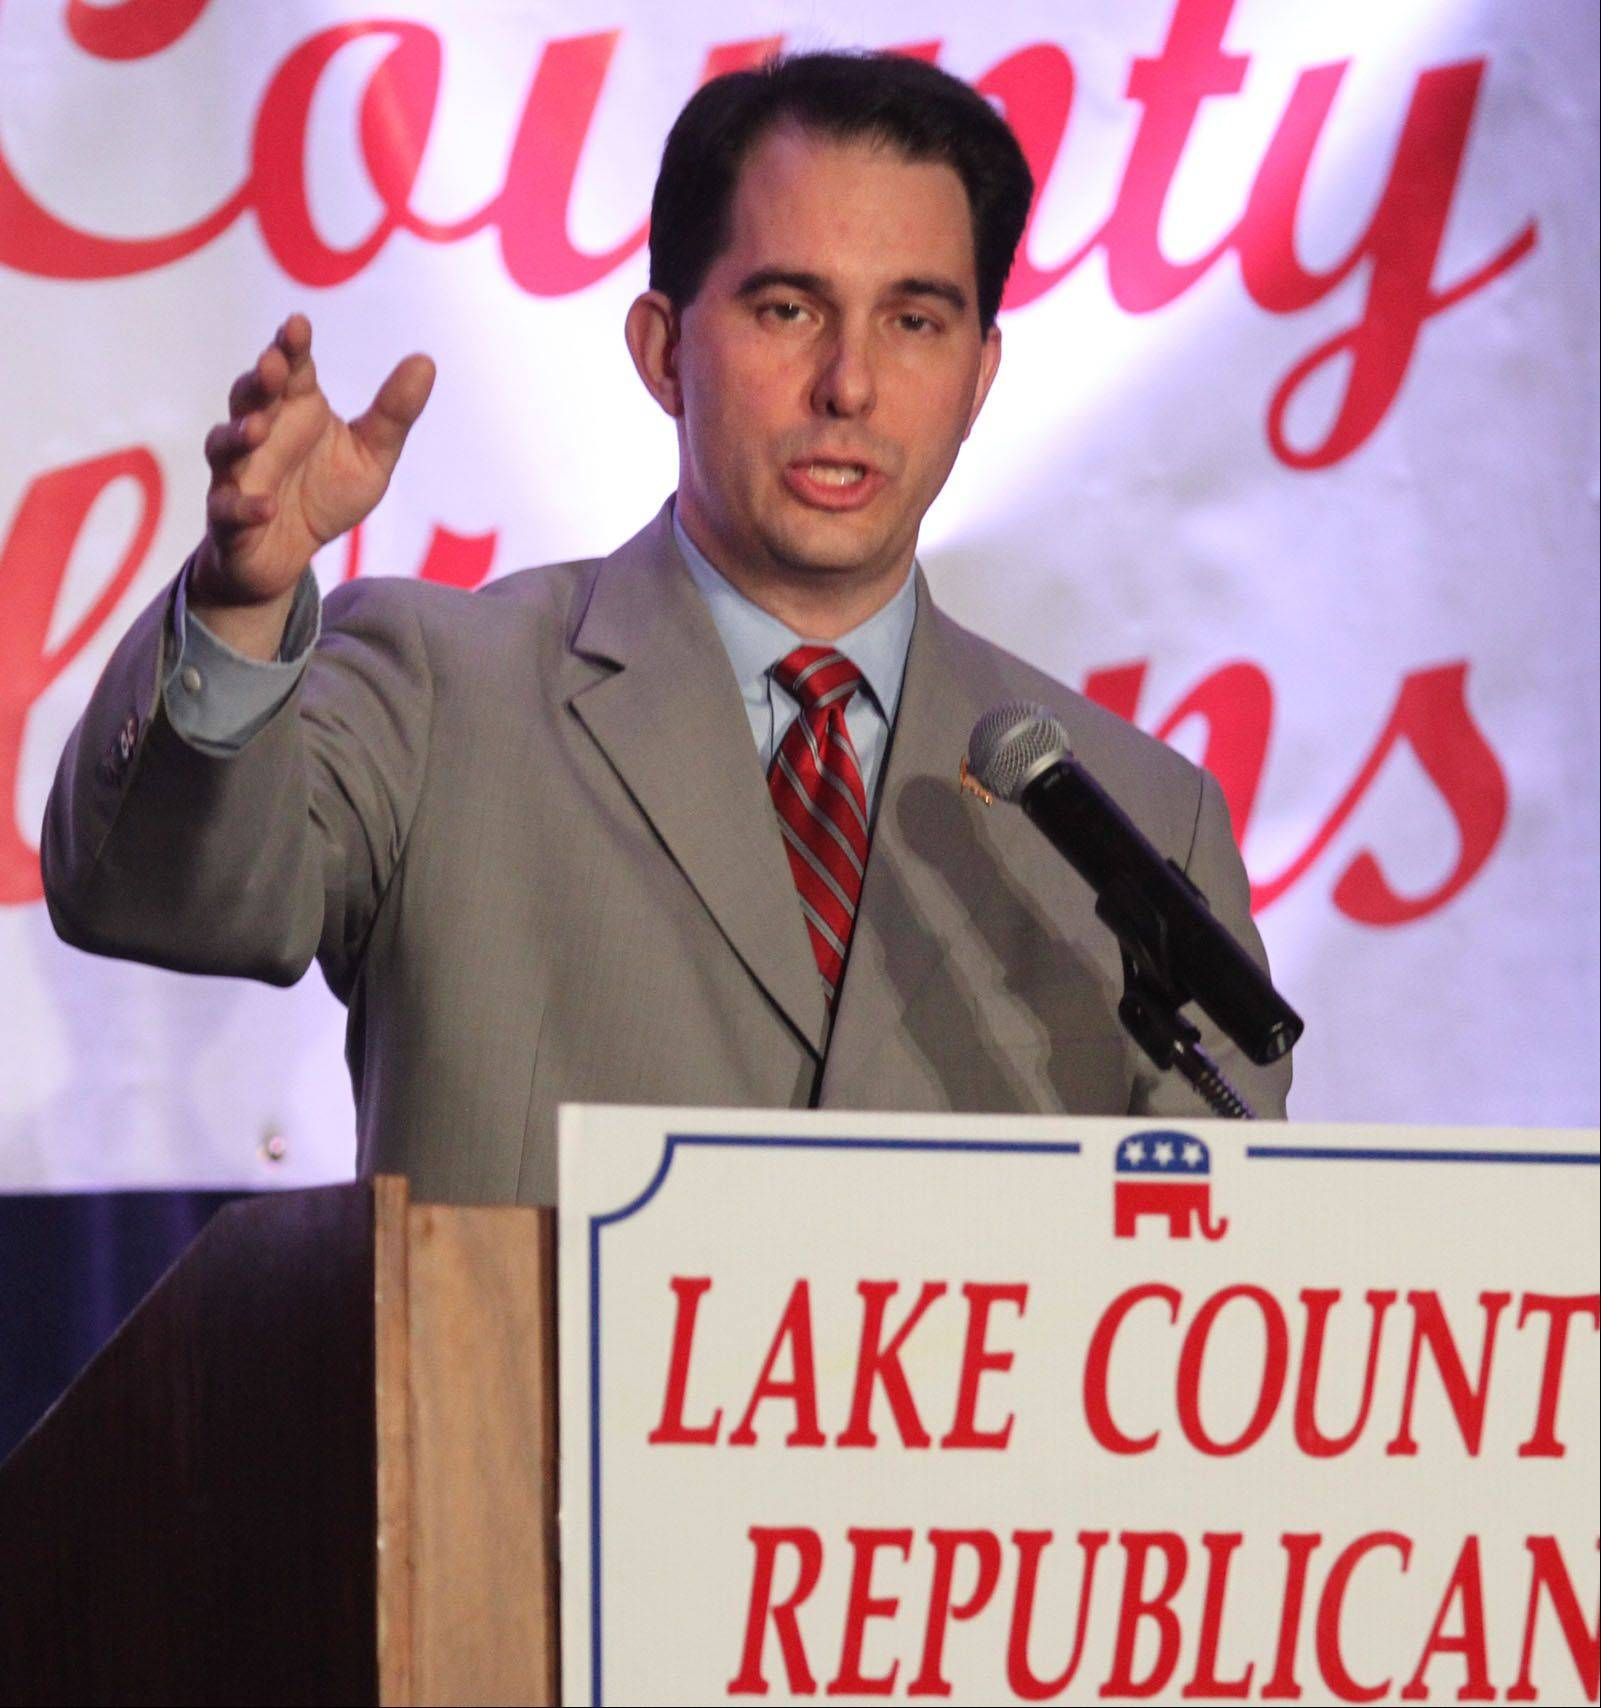 Wisconsin Gov. Walker in Lincolnshire touts reforms, protesters decry them